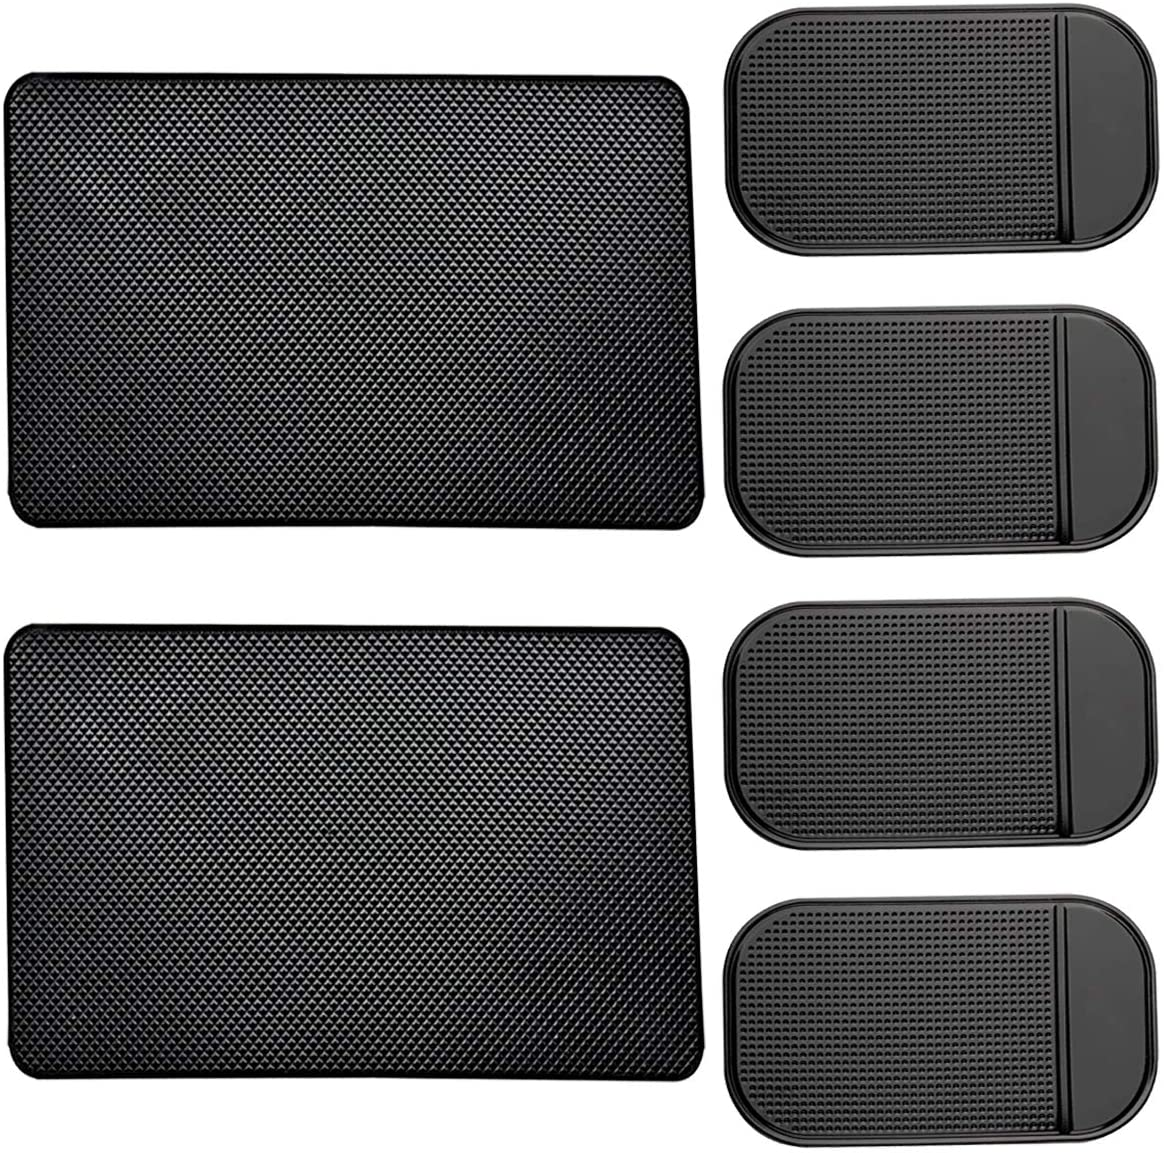 AYWFEY 6 Pack Non-Slip Car Dashboard Grip Pad,Anti-Slip Heat Resistant Sticky Gel Dash Latex Mat for Cell Phone Vehicle Sunglasses Keys Coins CD Electronic Devices GPS,2 Sizes,Black